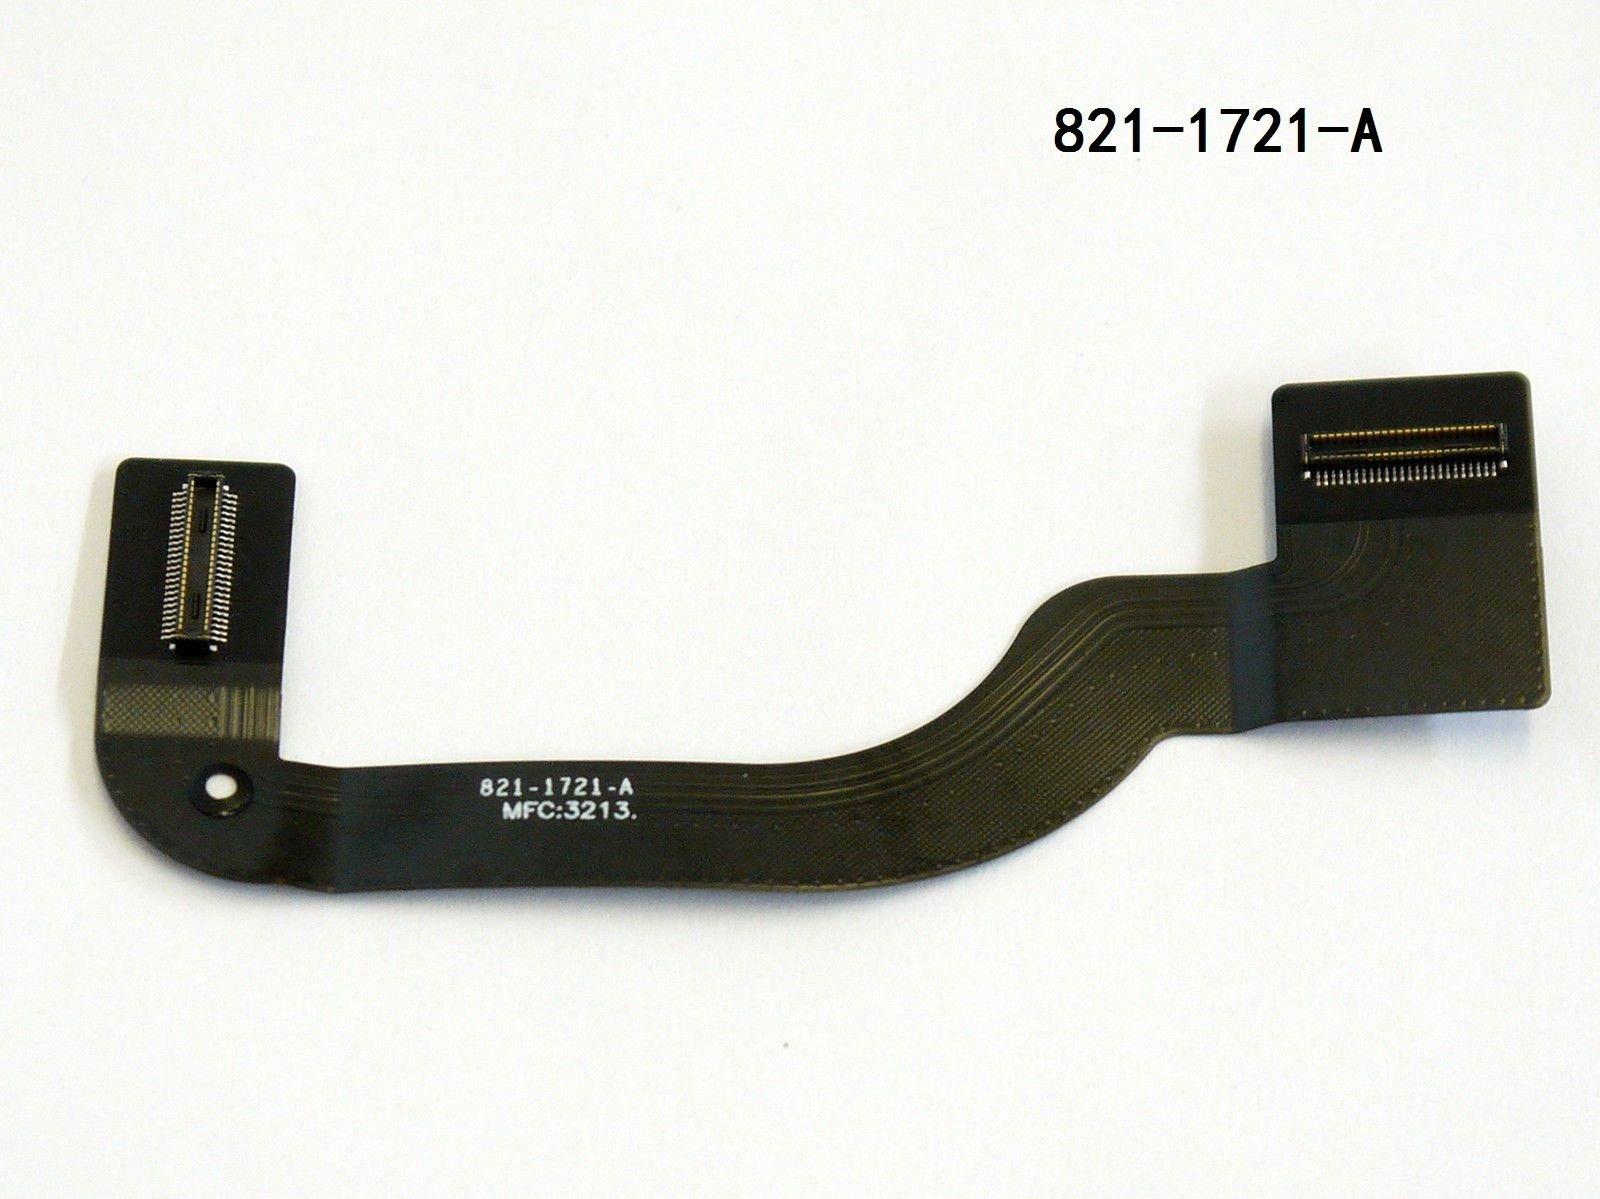 JYLTK New Replacement I/O Board Flex Cable Audio Cable 821-1721-A for Apple MacBook Air 11'' A1465 (Mid 2013, Early 2014, Early 2015)